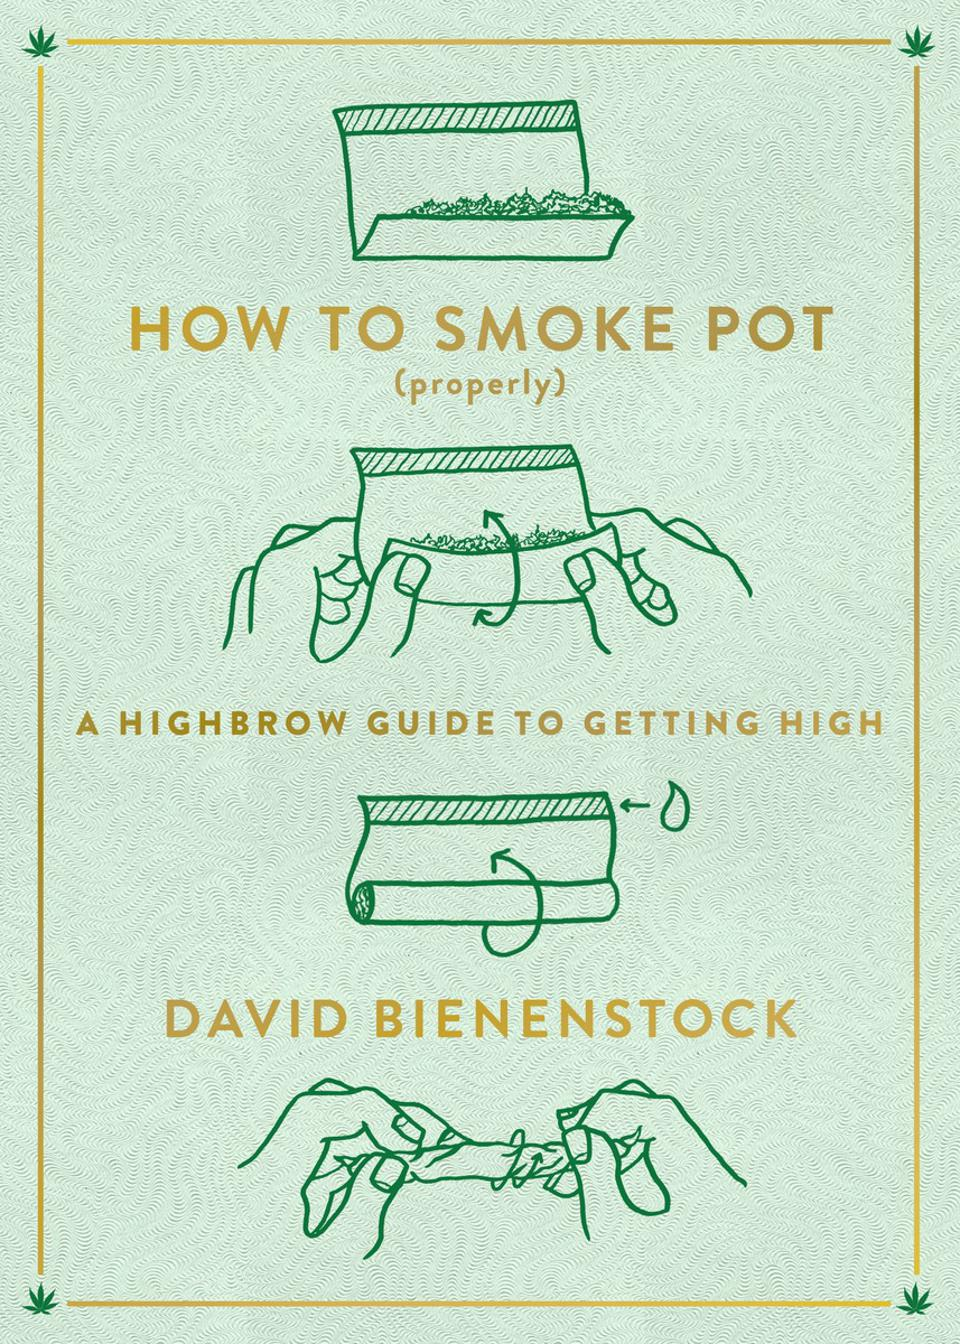 David Bienenstock, How to Smoke Pot (Properly), cannabis books, cannabis culture